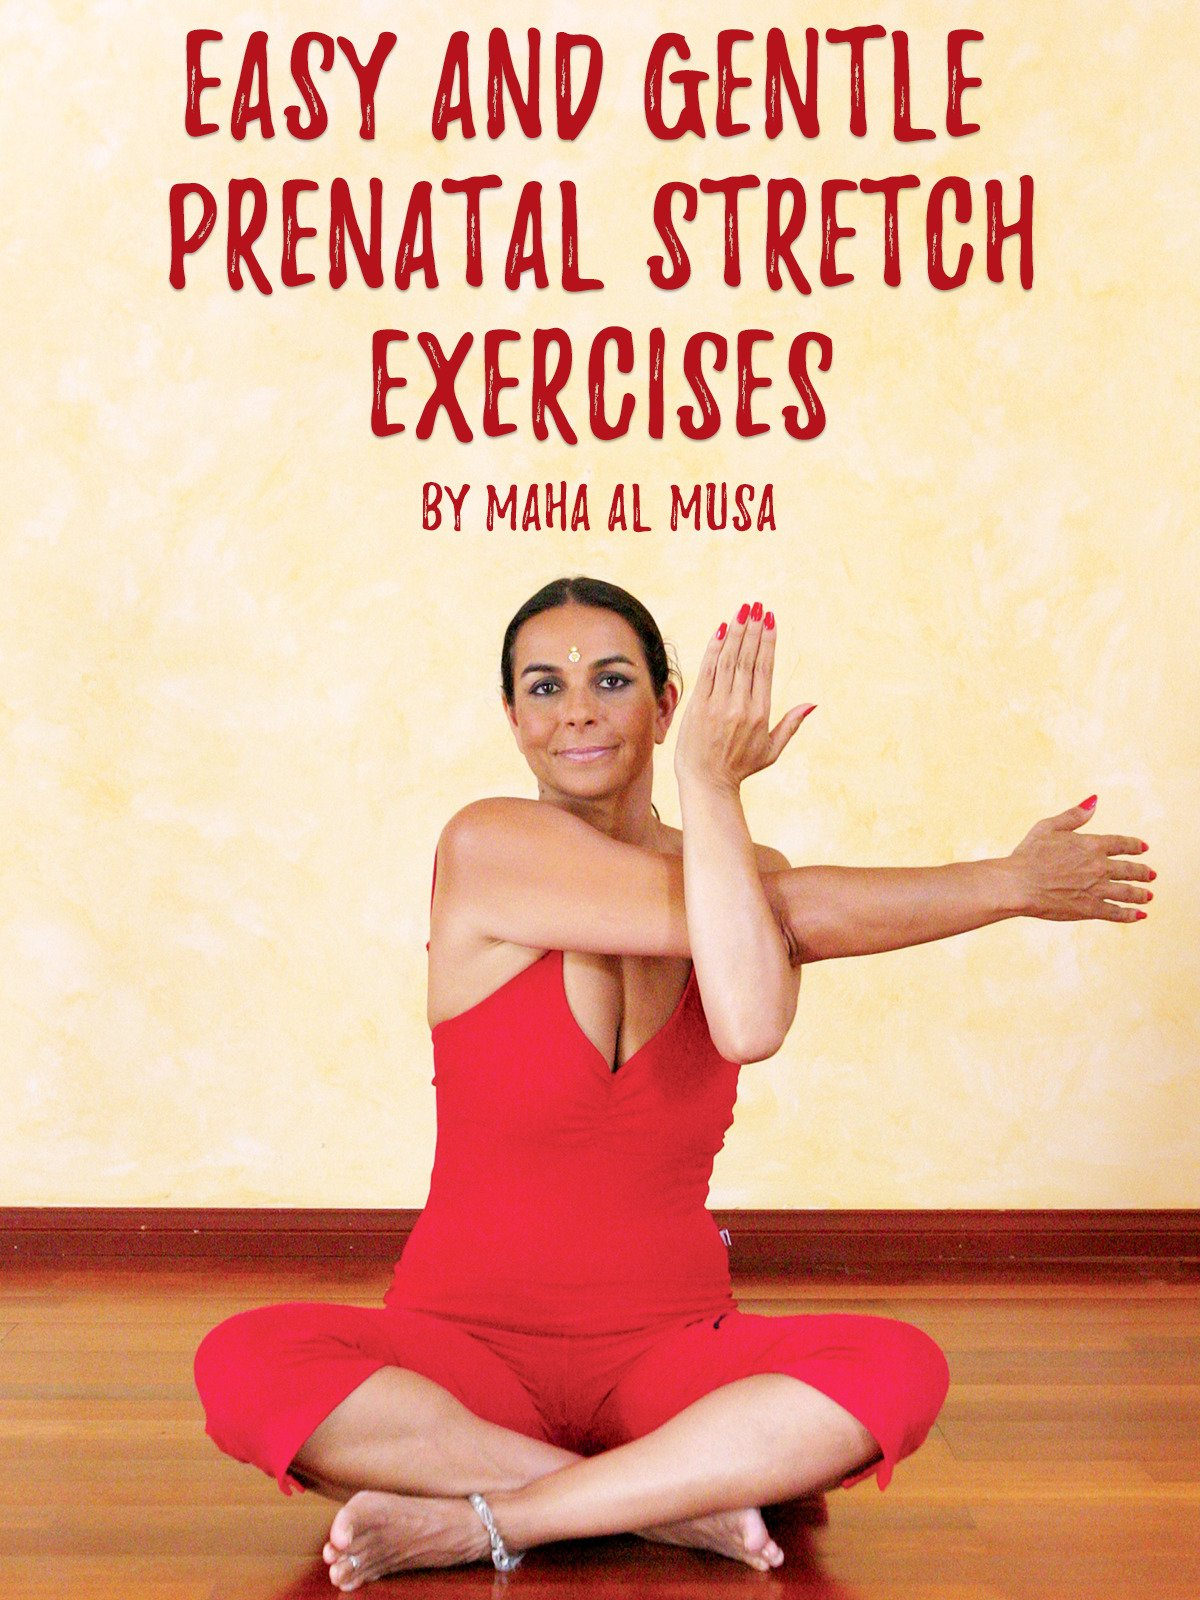 Easy and Gentle Prenatal Stretch Exercises by Maha Al Musa